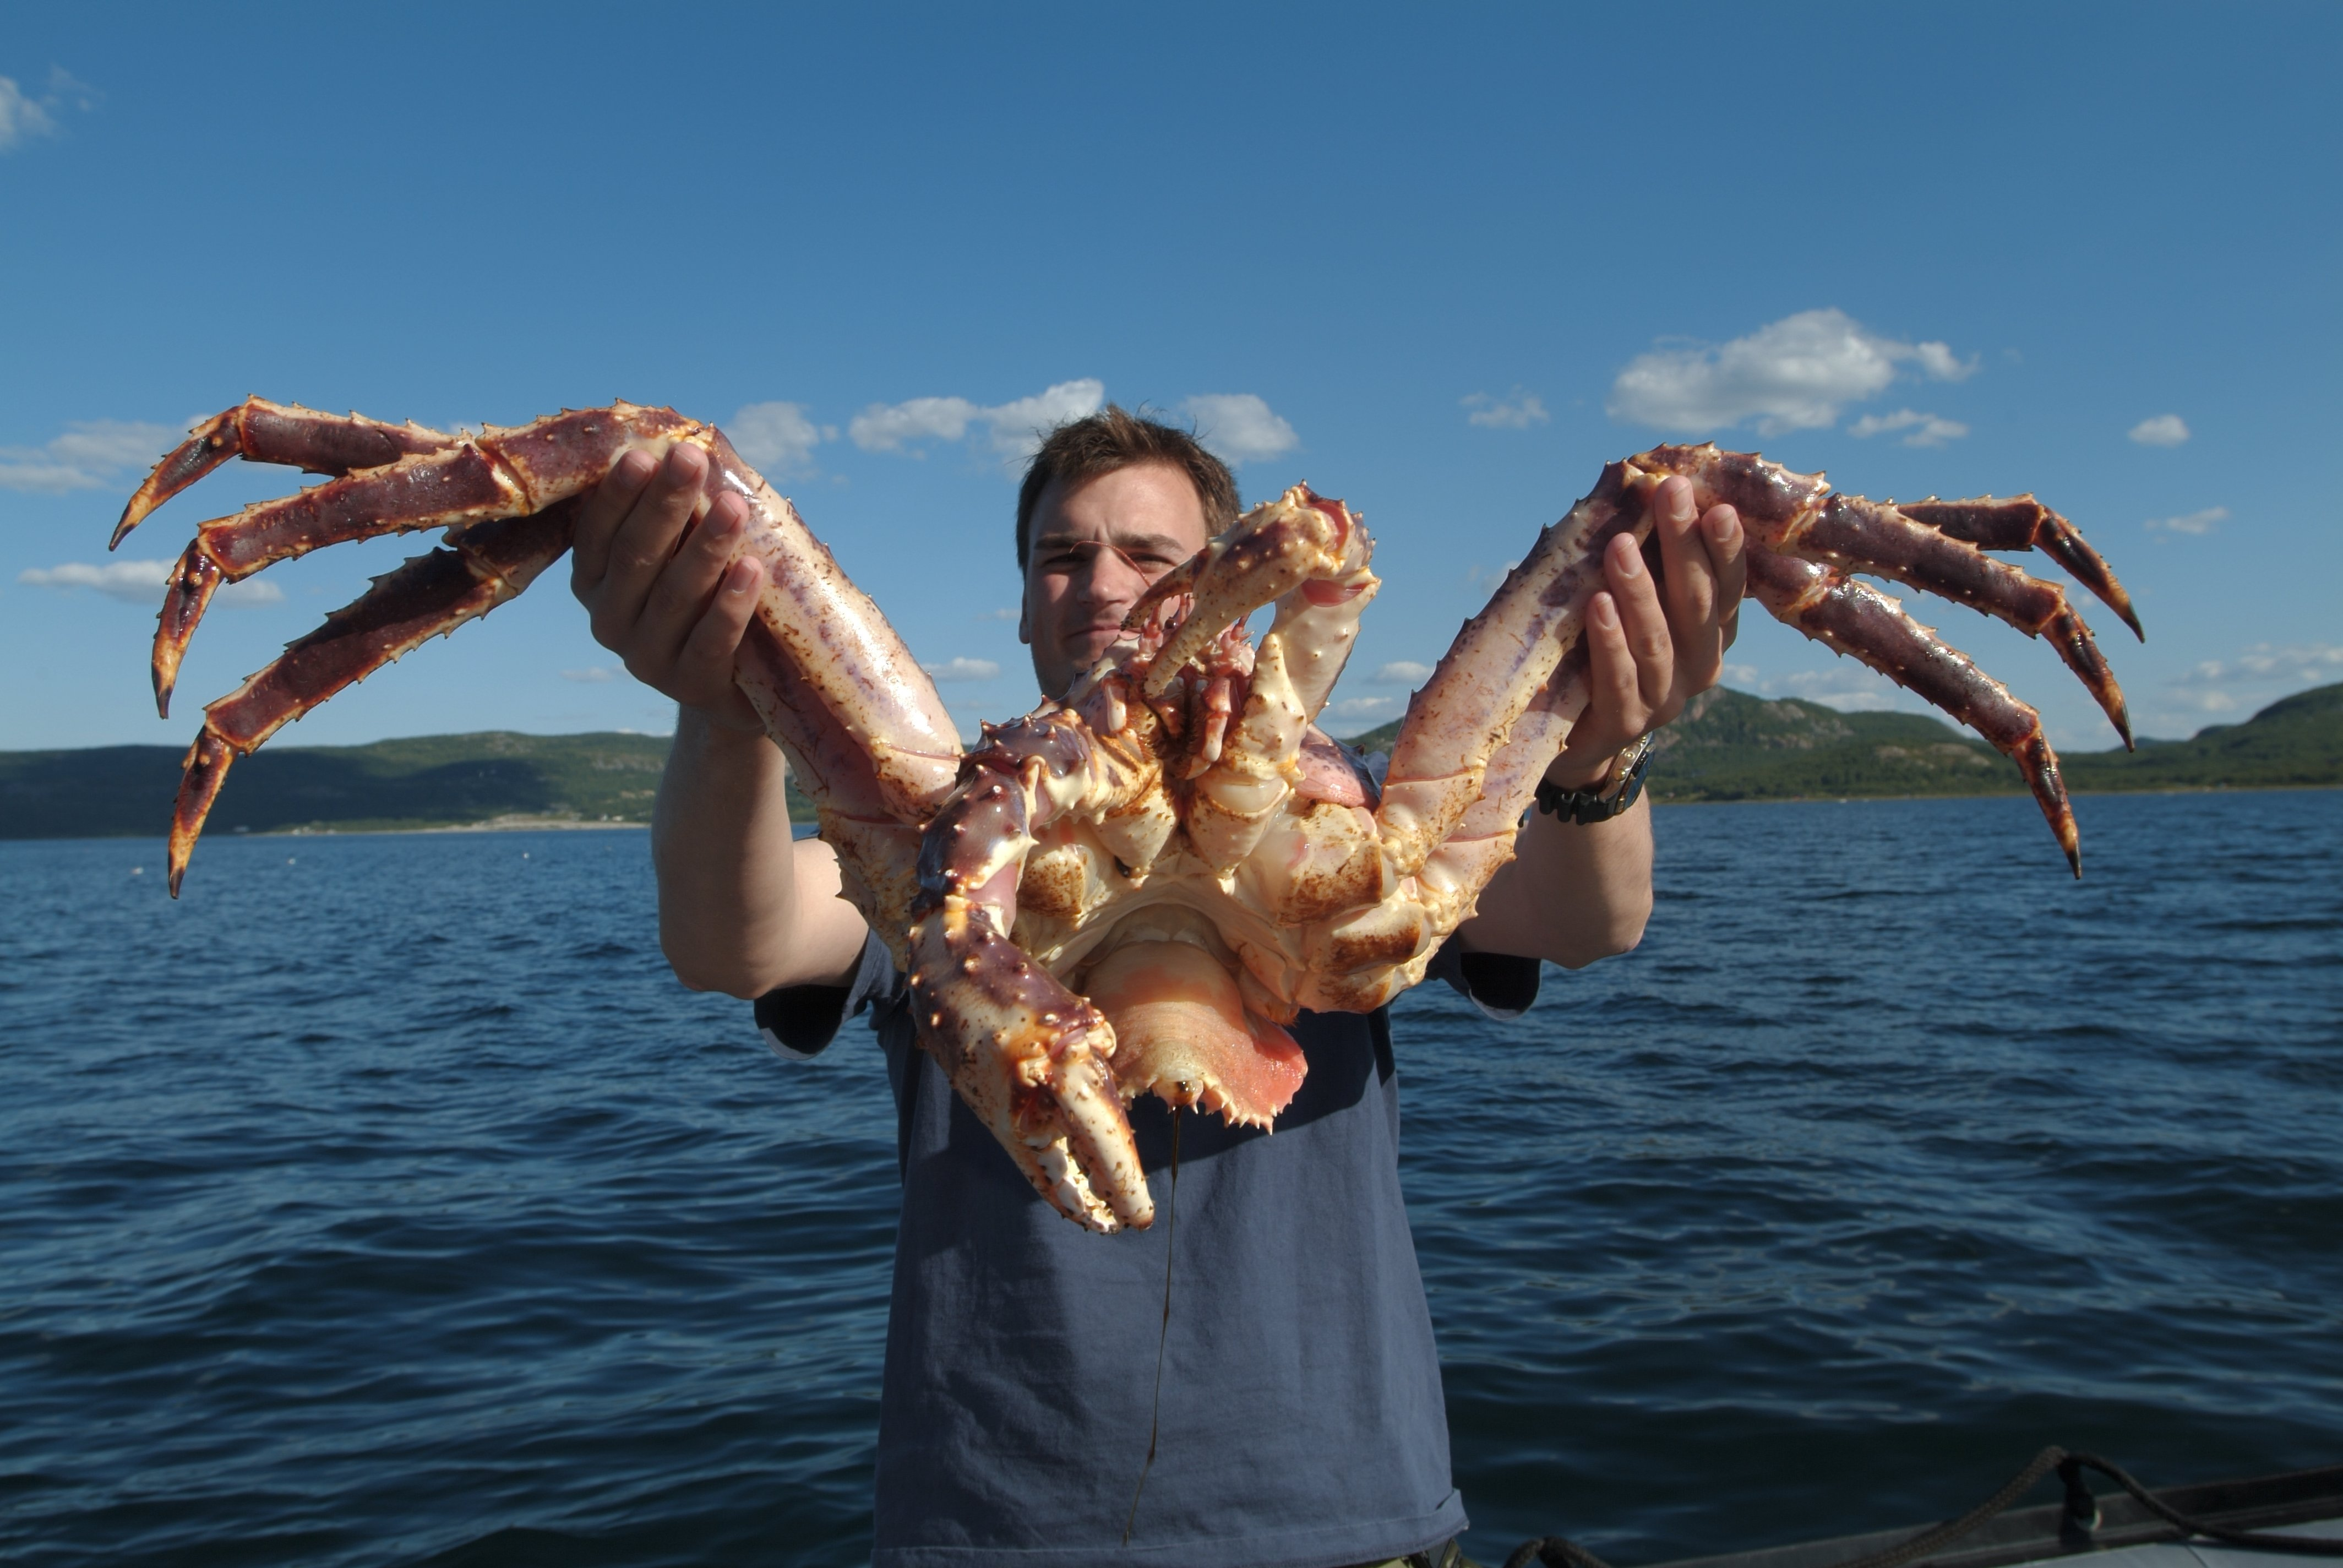 More than 120 species of king crabs are known.